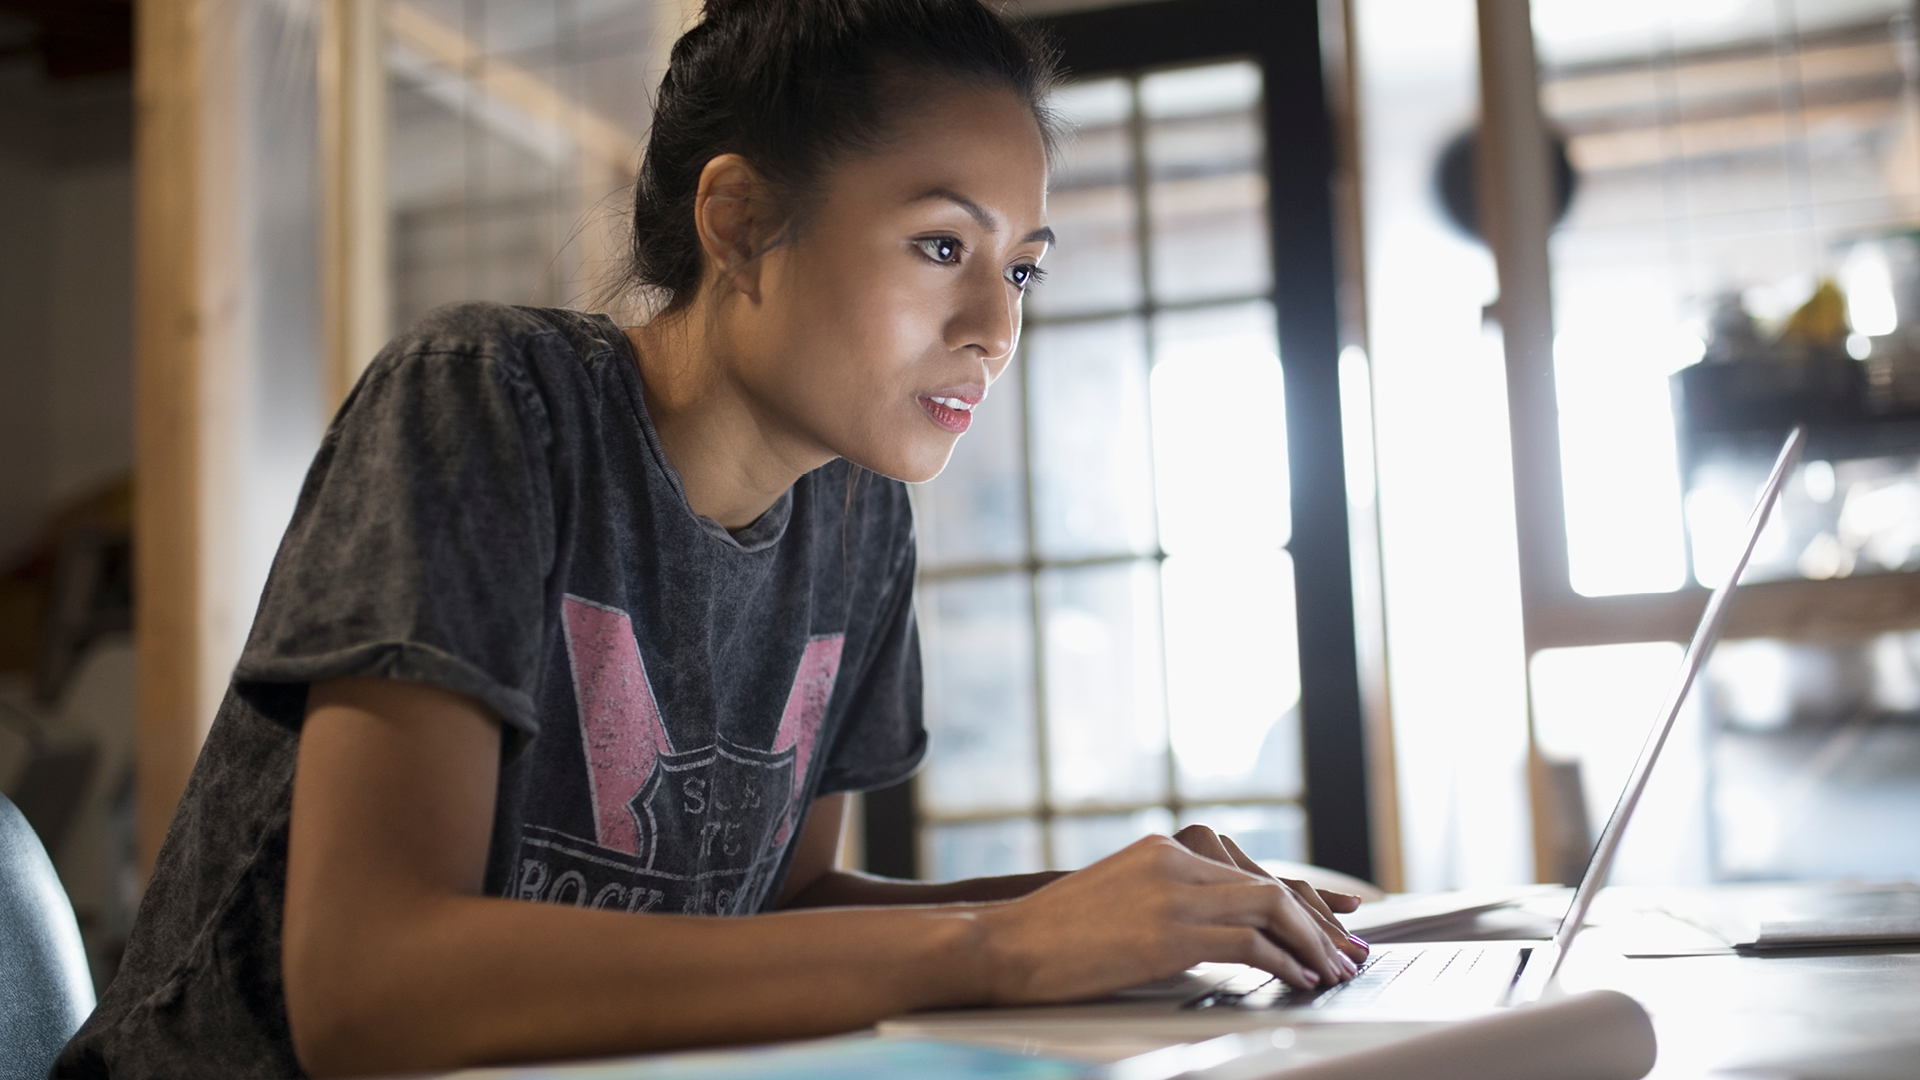 Image of a woman working at a laptop